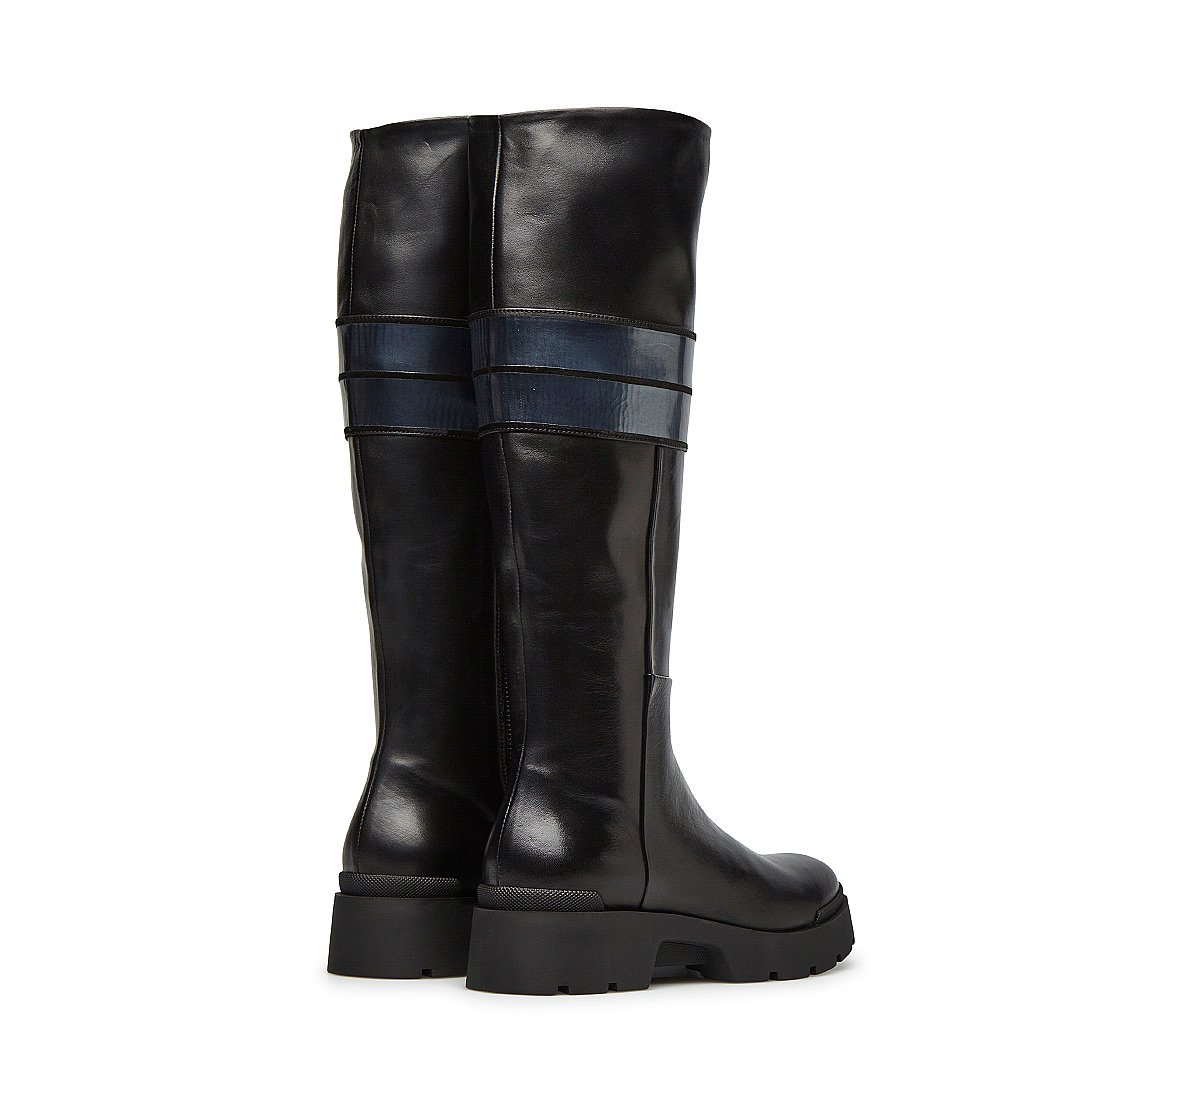 Boots in fine brushed calfskin